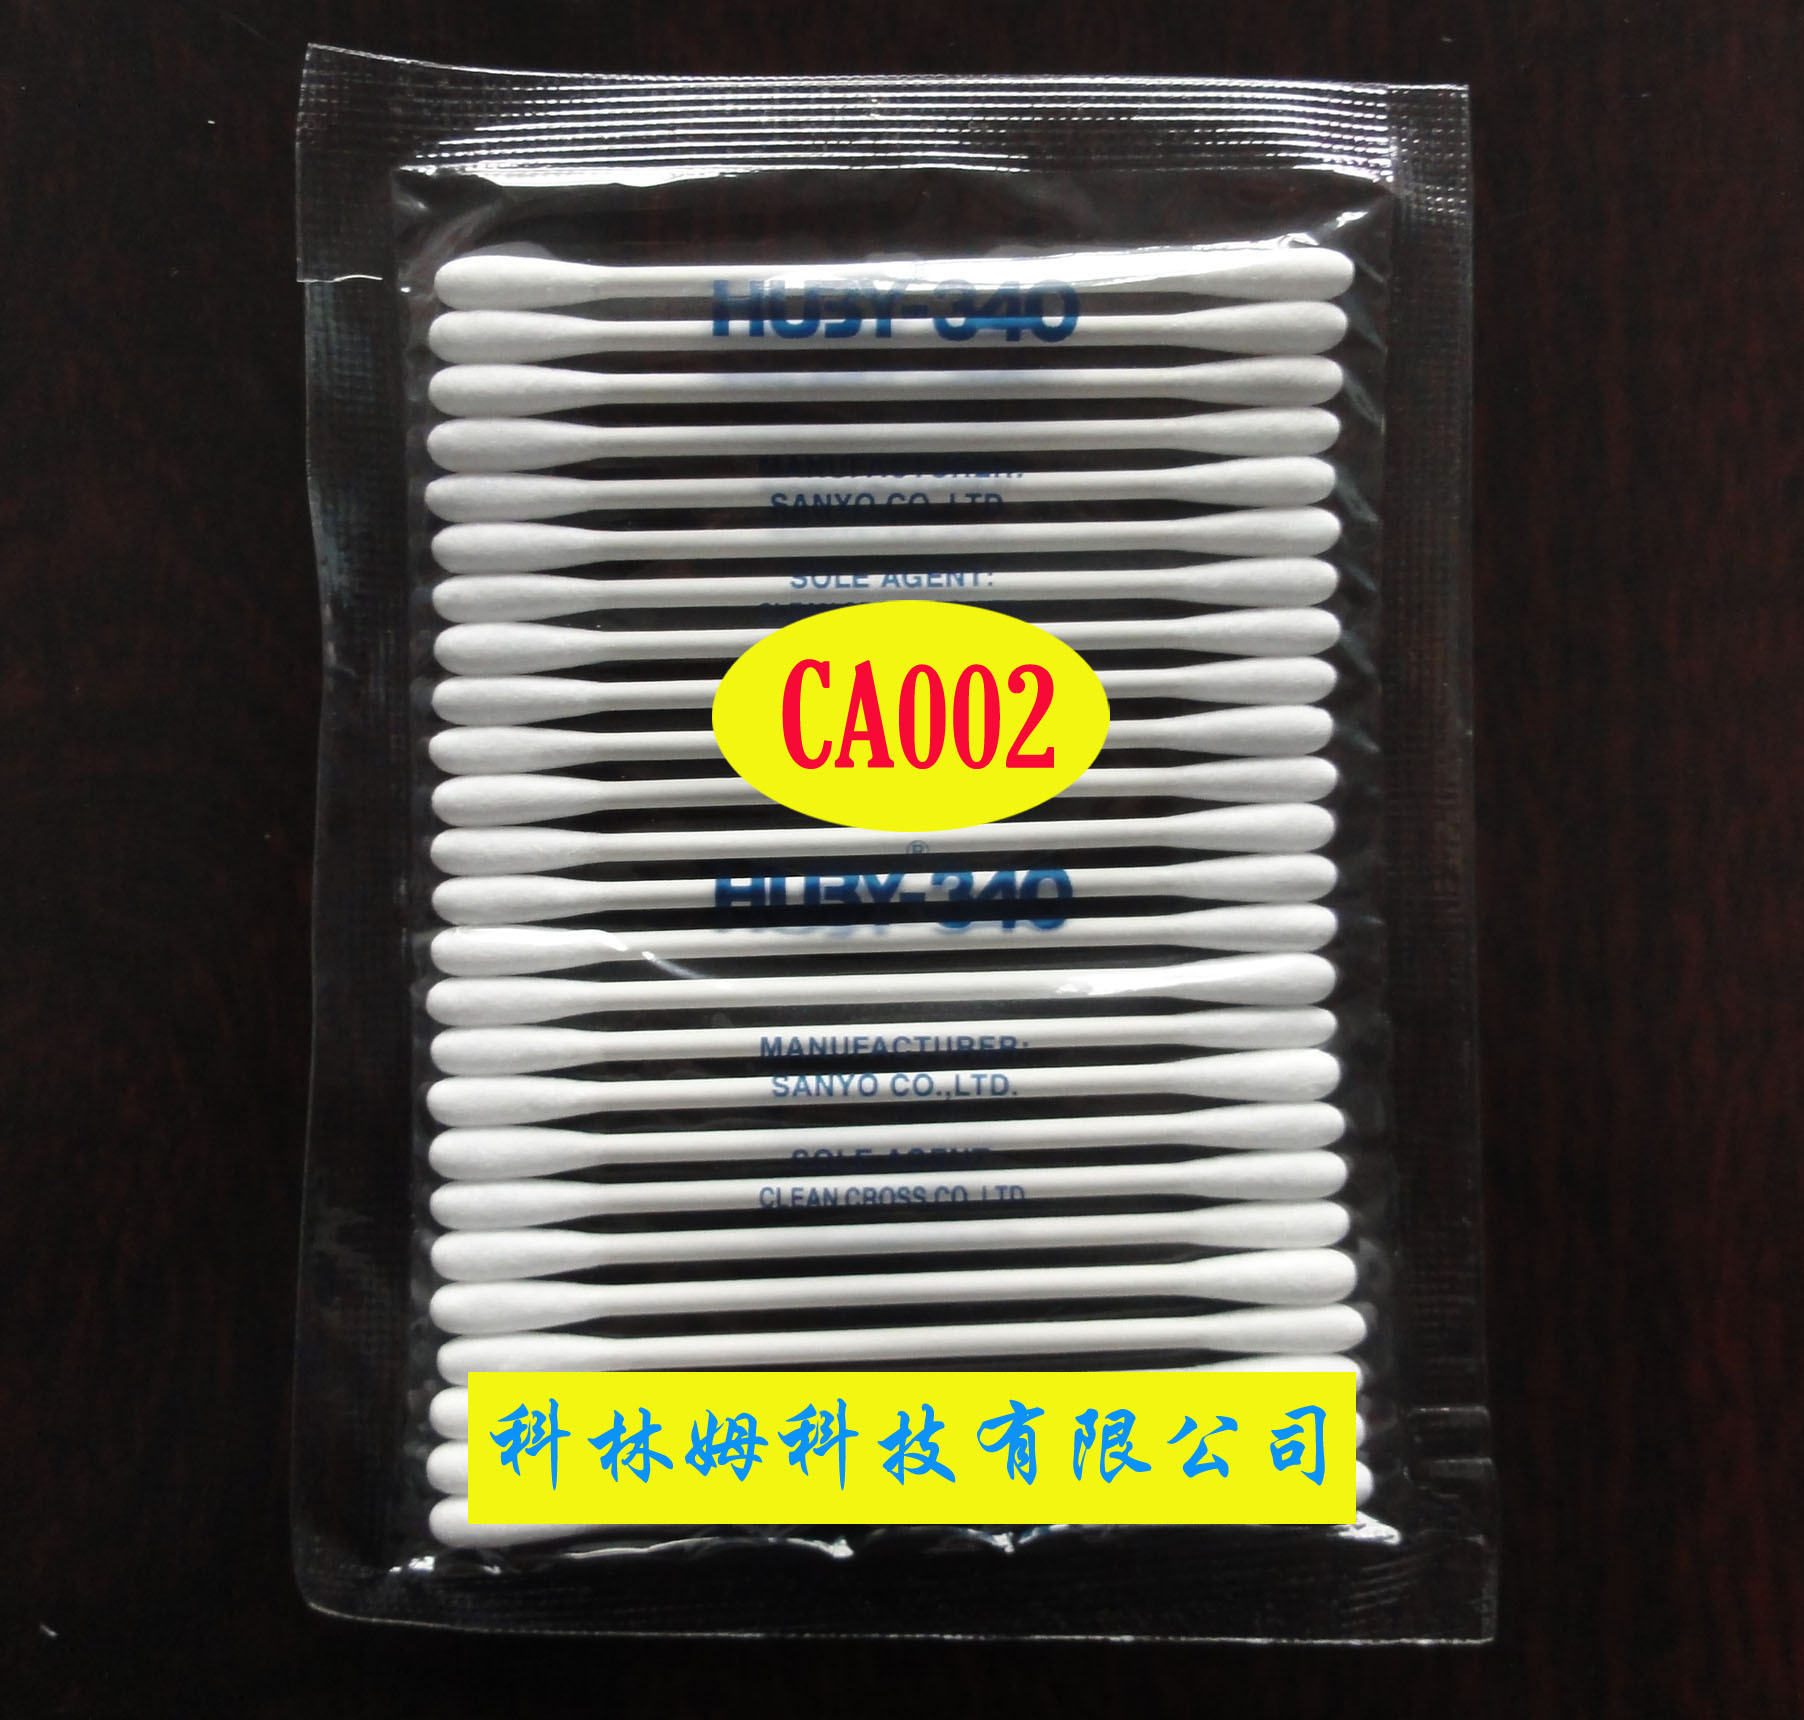 Manufacturers Wholesale Huby-CA002 Double Headed Zhi Gan Cotton Swab Dust-free Cotton Swab Zhi Gan + Zhang Si Mian Japan Cotton